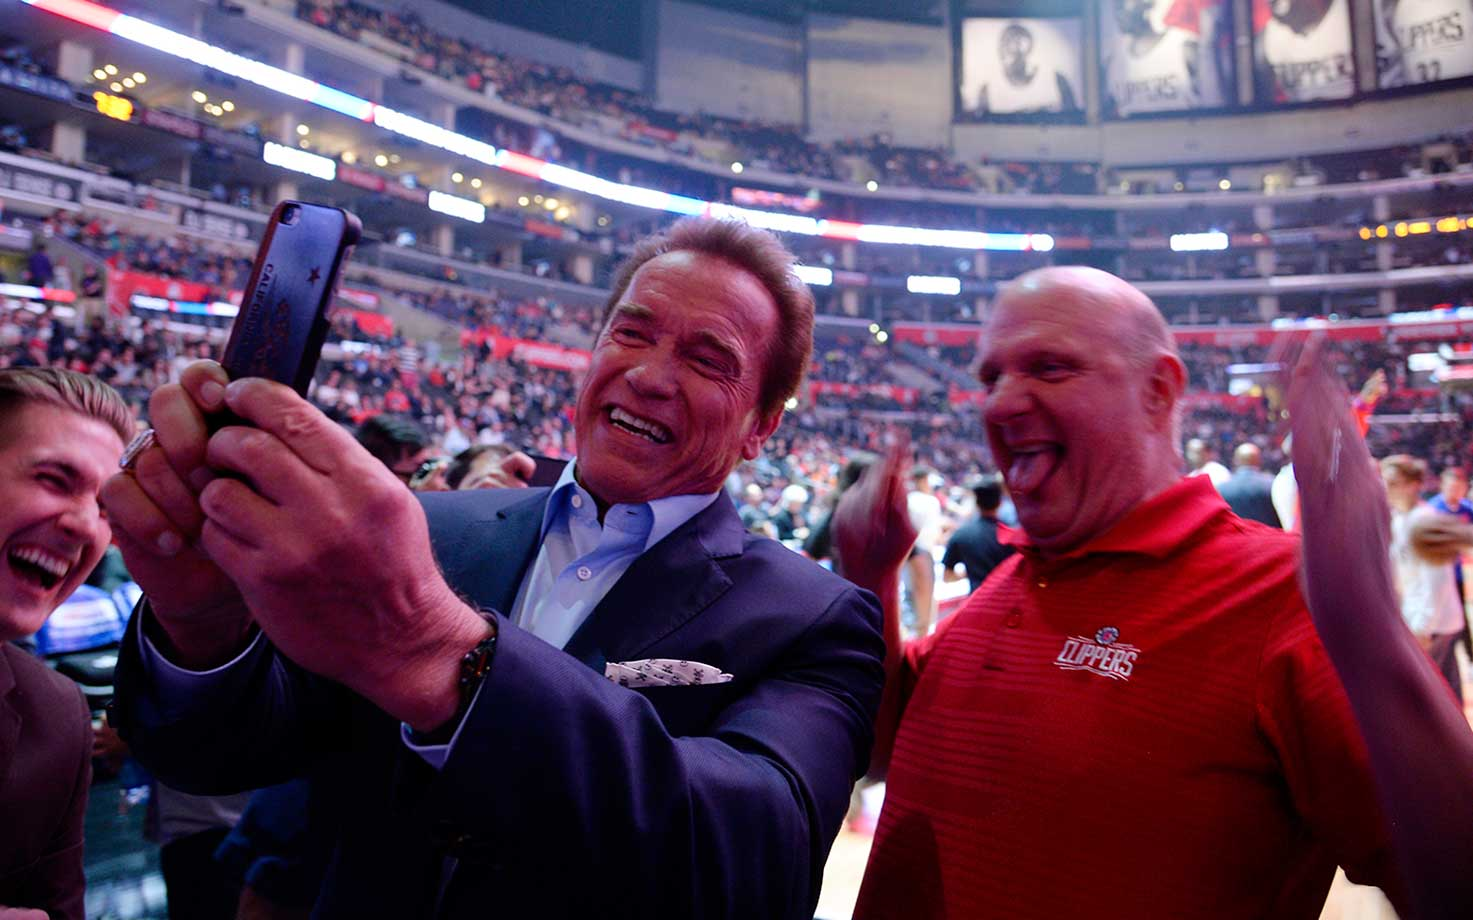 Actor and former governor of California Arnold Schwarzenegger and Clippers owner Steve Ballmer take a selfie during a game between L.A. and Phoenix.